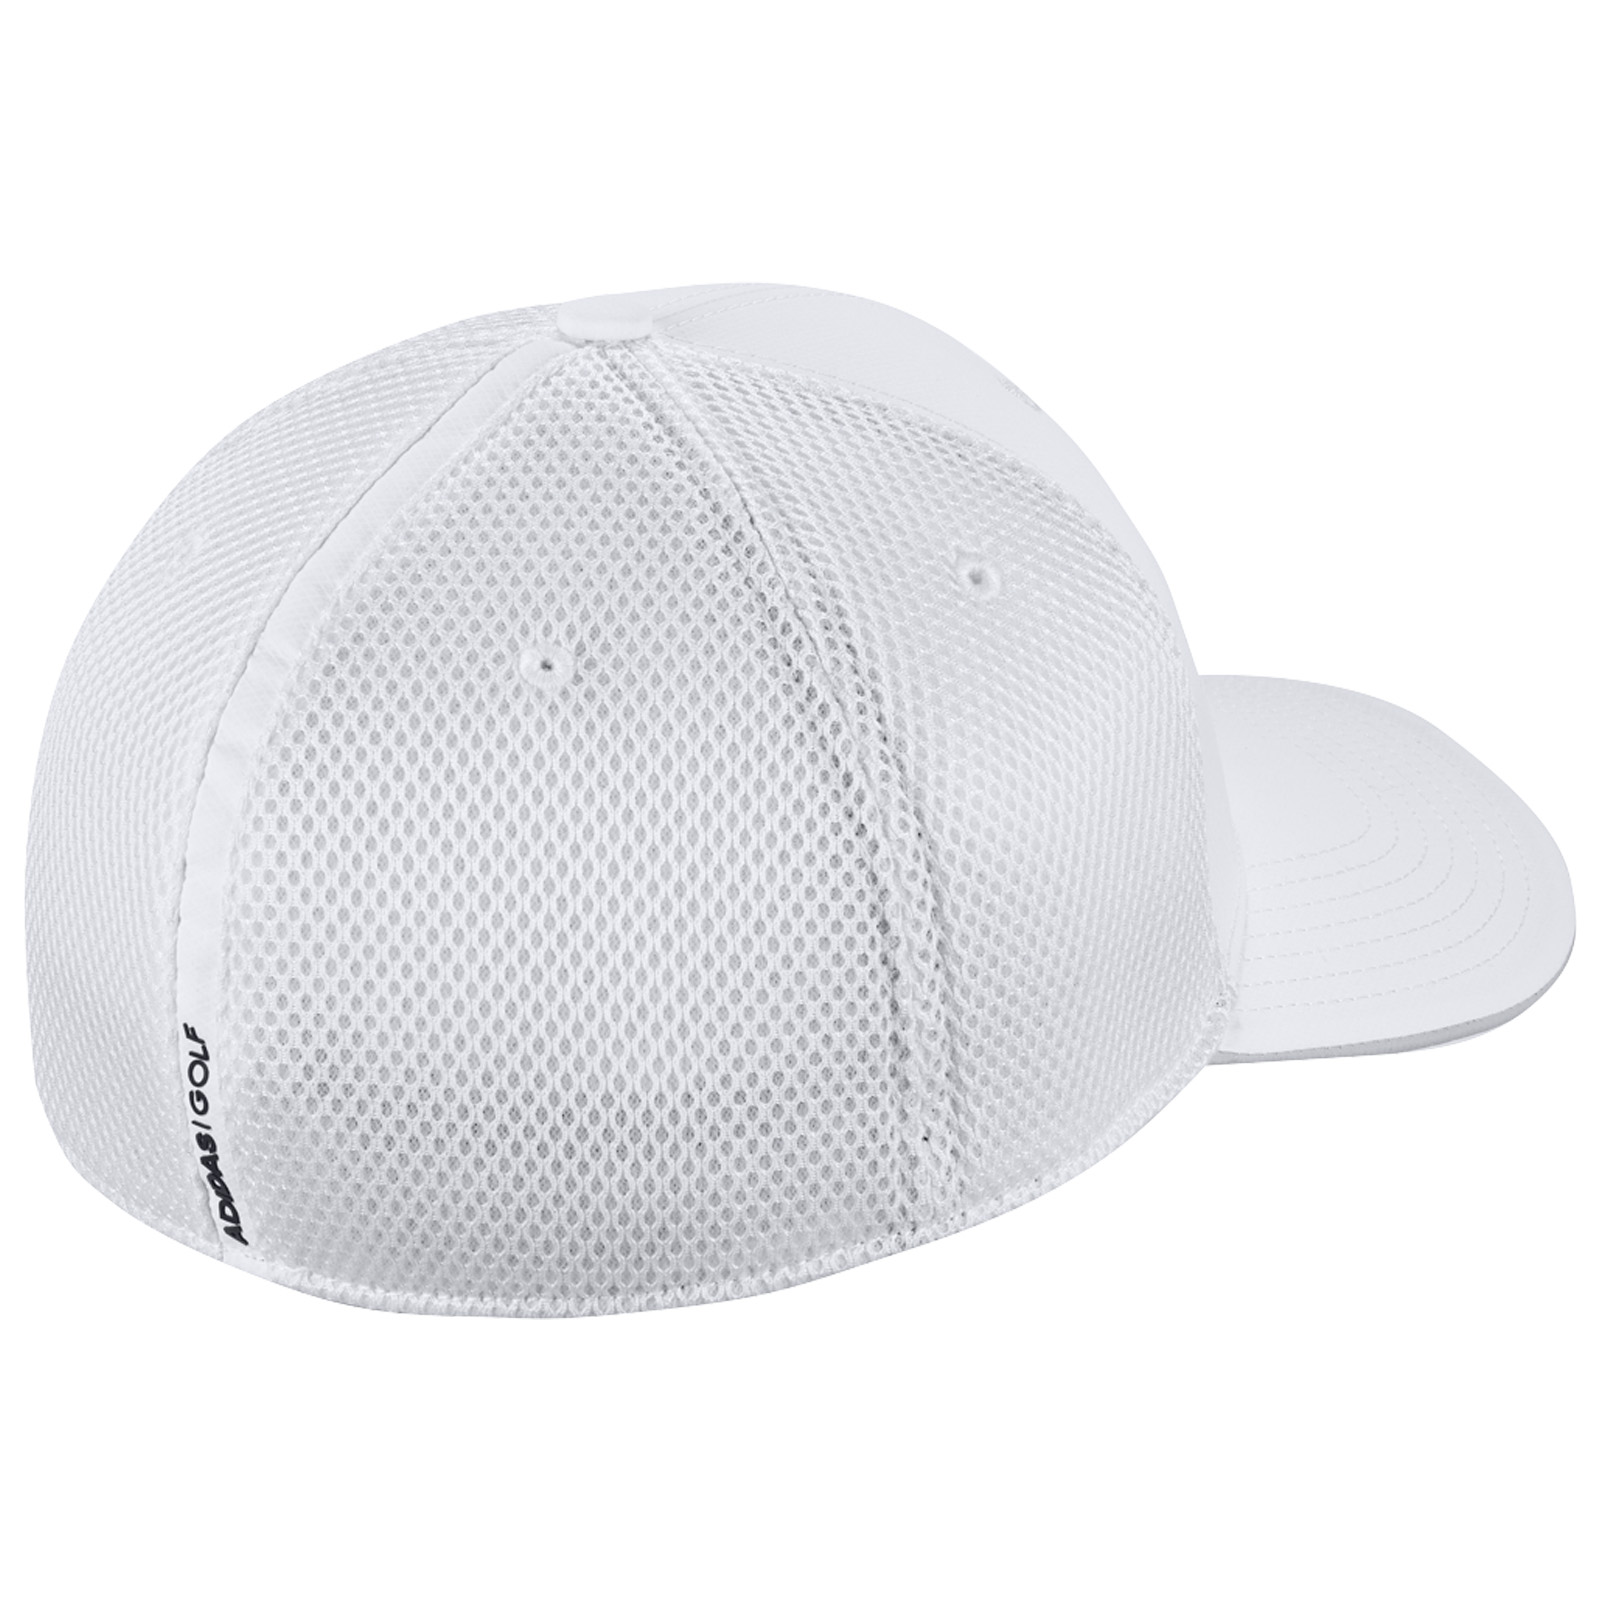 Adidas-Mens-A-Stretch-Tour-Fitted-Golf-Cap-Breathable-Mesh-Baseball-Hat Indexbild 5